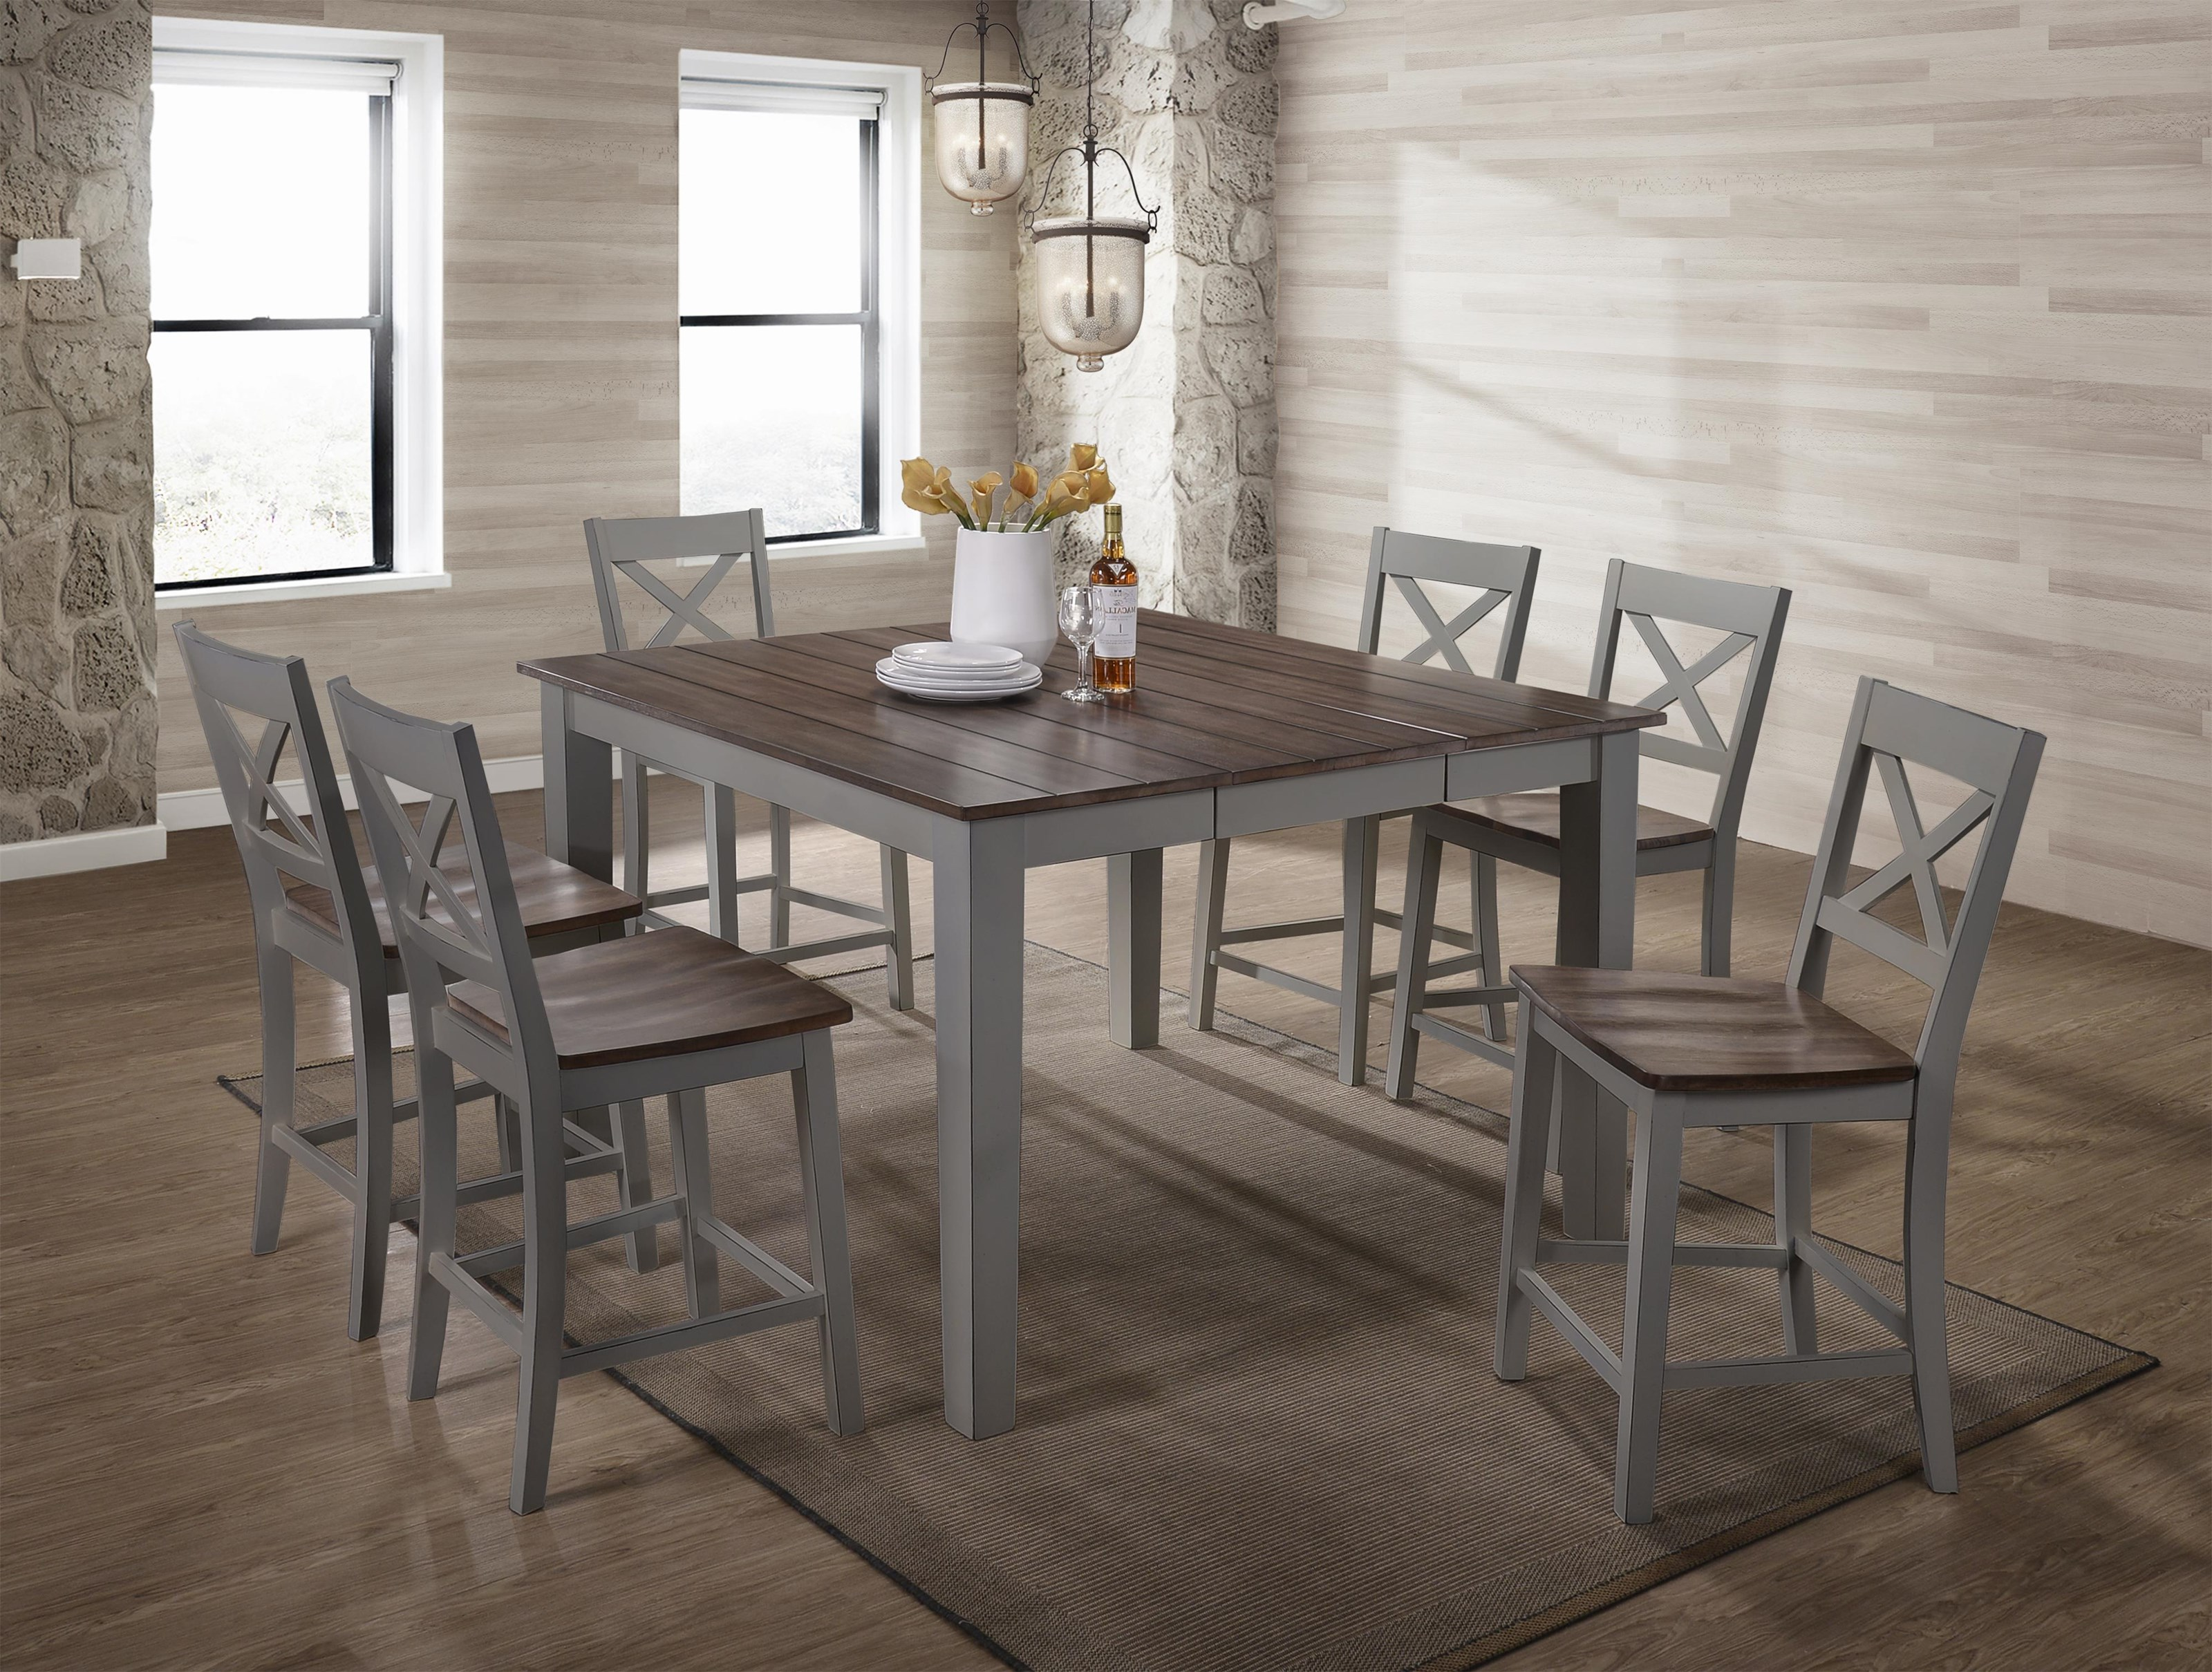 5059 Counter Height Square Dining Table by United Furniture Industries at Value City Furniture